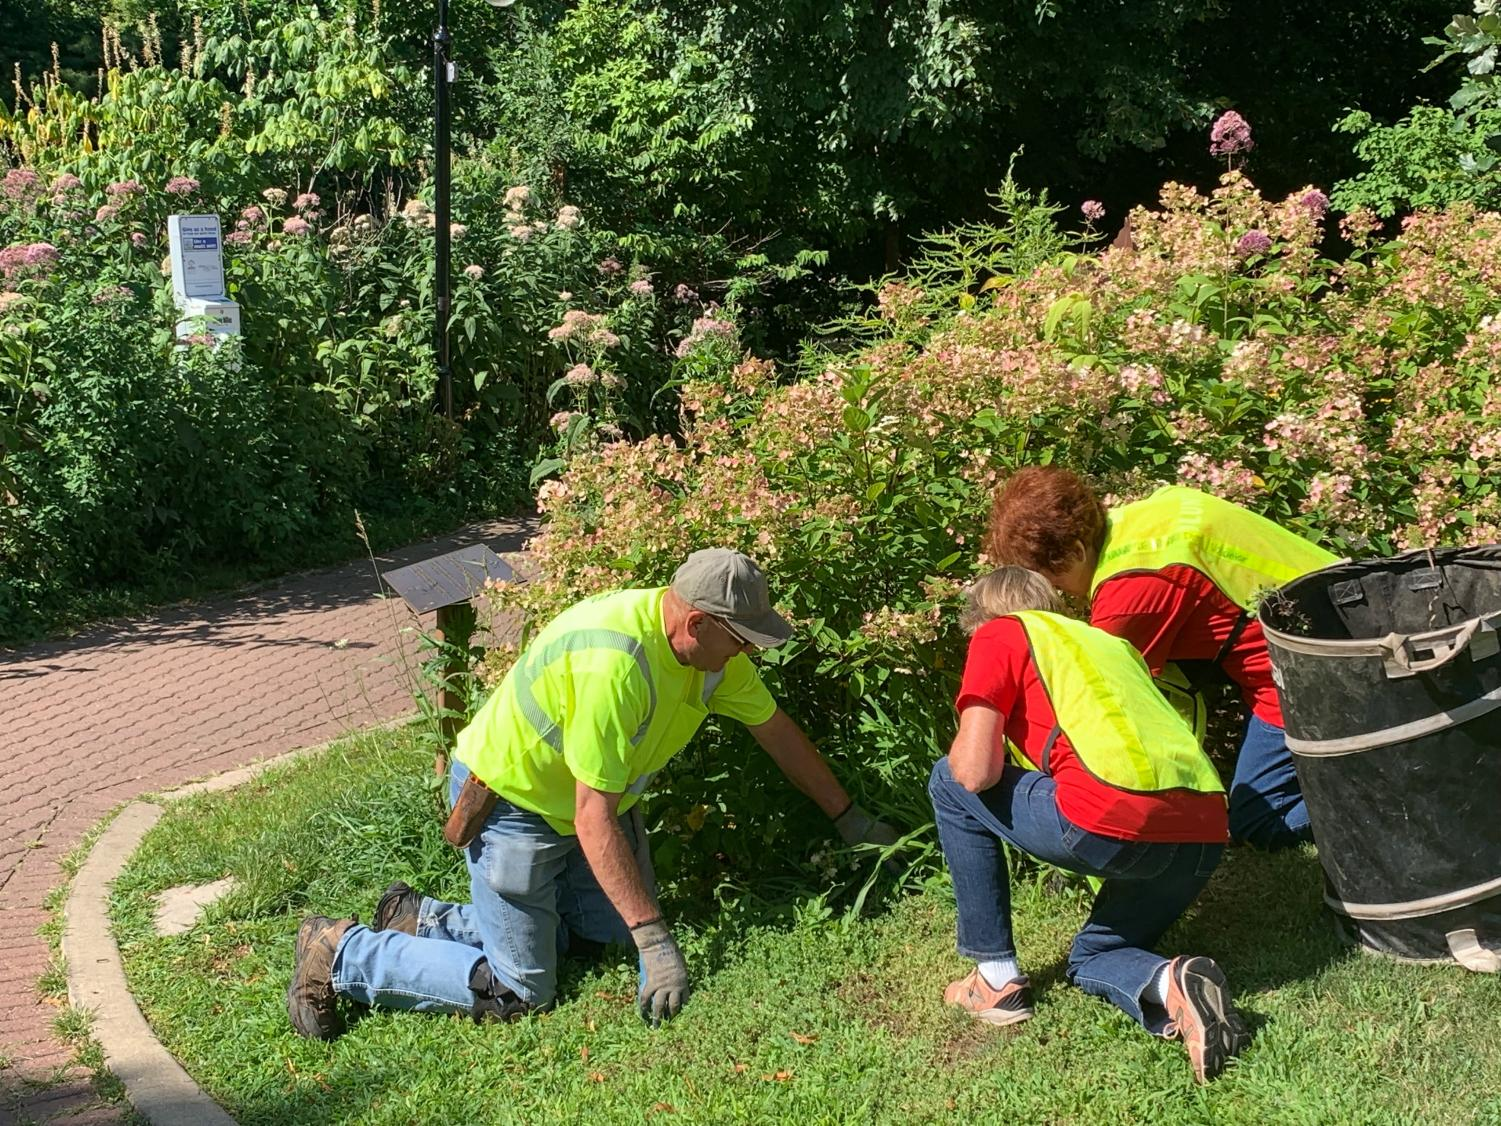 Volunteers working together to weed around a bush